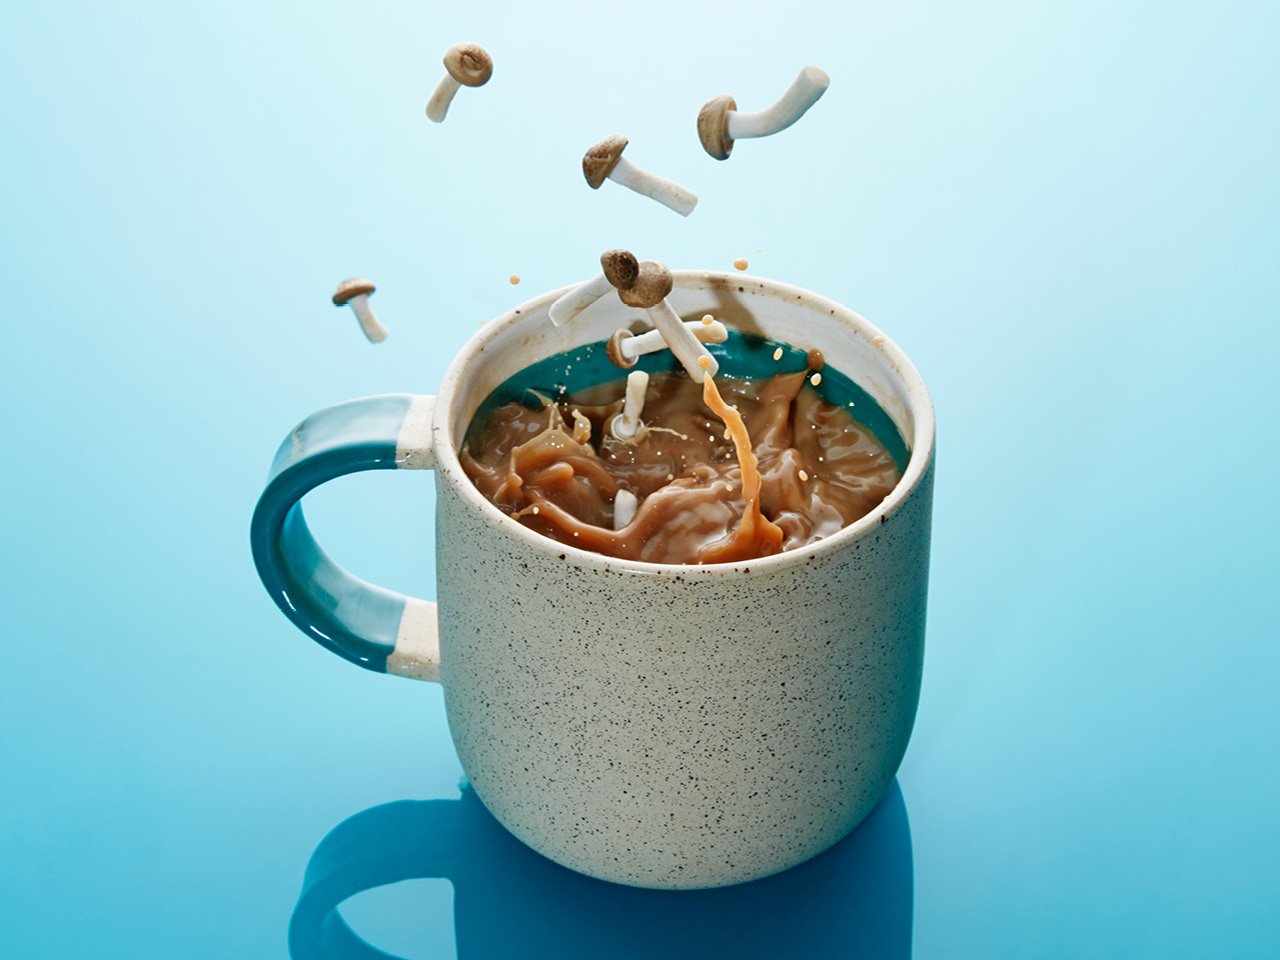 Mushrooms dropping into a mug of water against a blue background